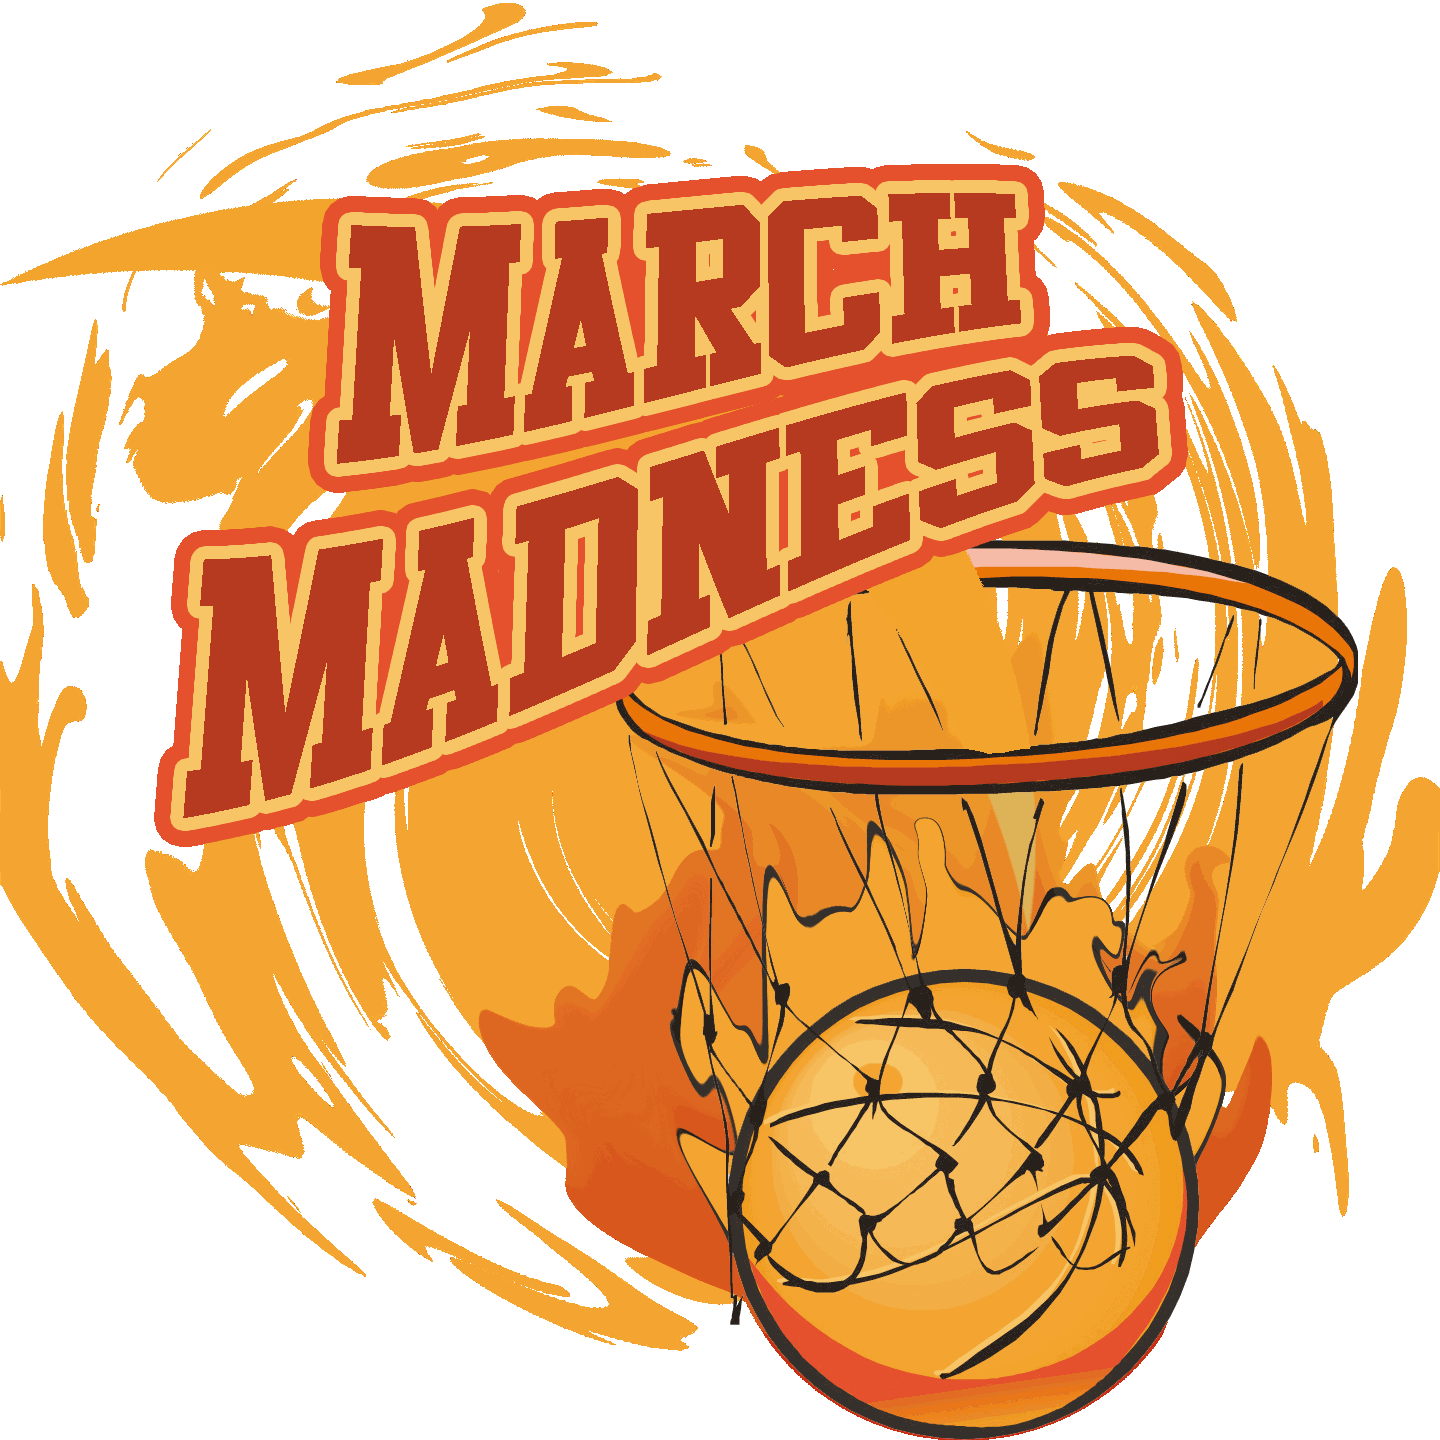 Ncaa march madness clipart clip royalty free library Free Ncaa Championship Cliparts, Download Free Clip Art ... clip royalty free library